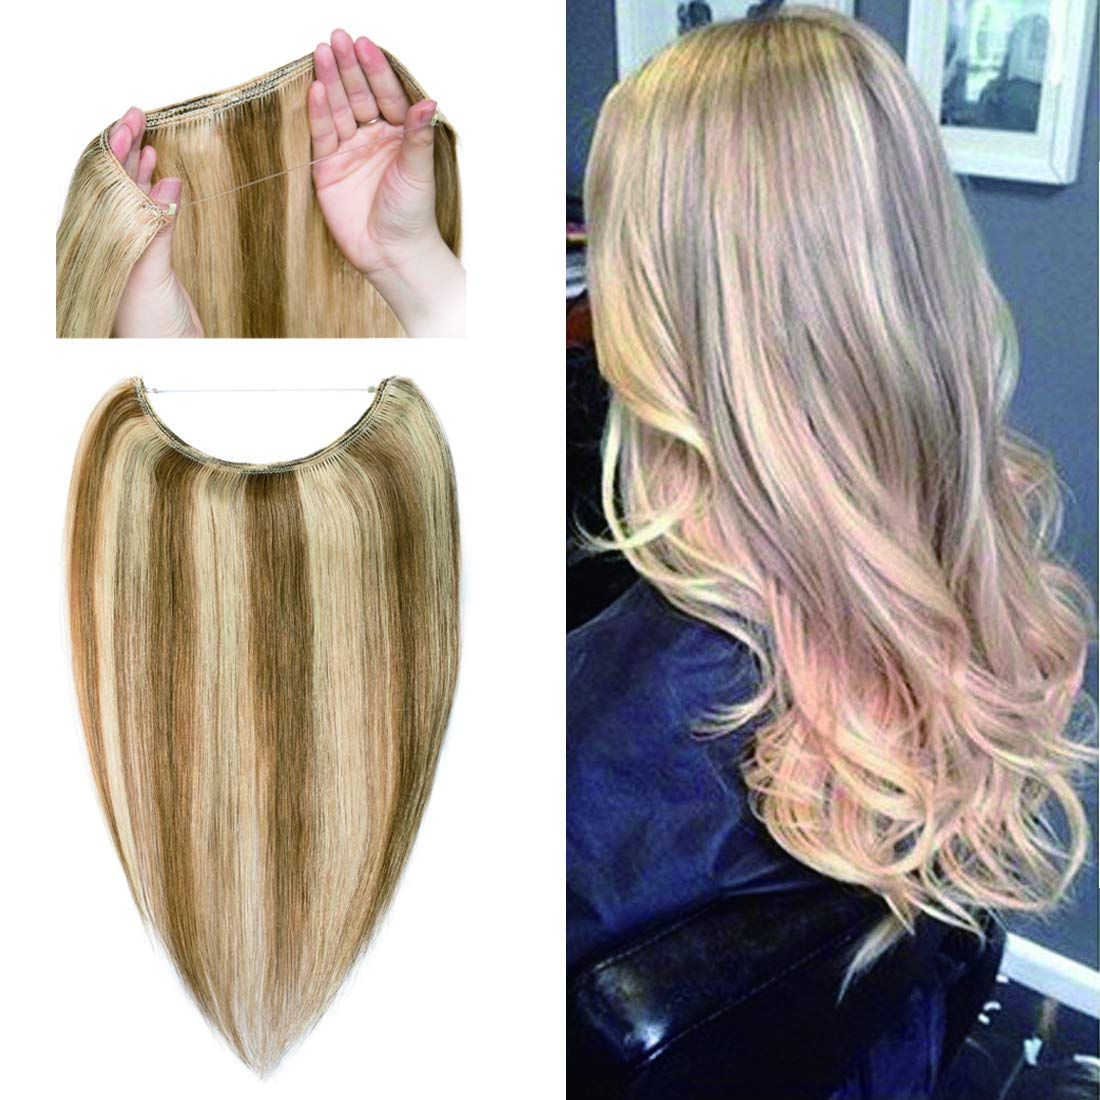 Human Hair Flip on Invisible Hidden String Crown Hair Extensions No Clips in Secret Hairpieces with Miracle Transparent Fish Line For Women #12P613 Golden Brown&Bleach Blonde 18 inches 65g